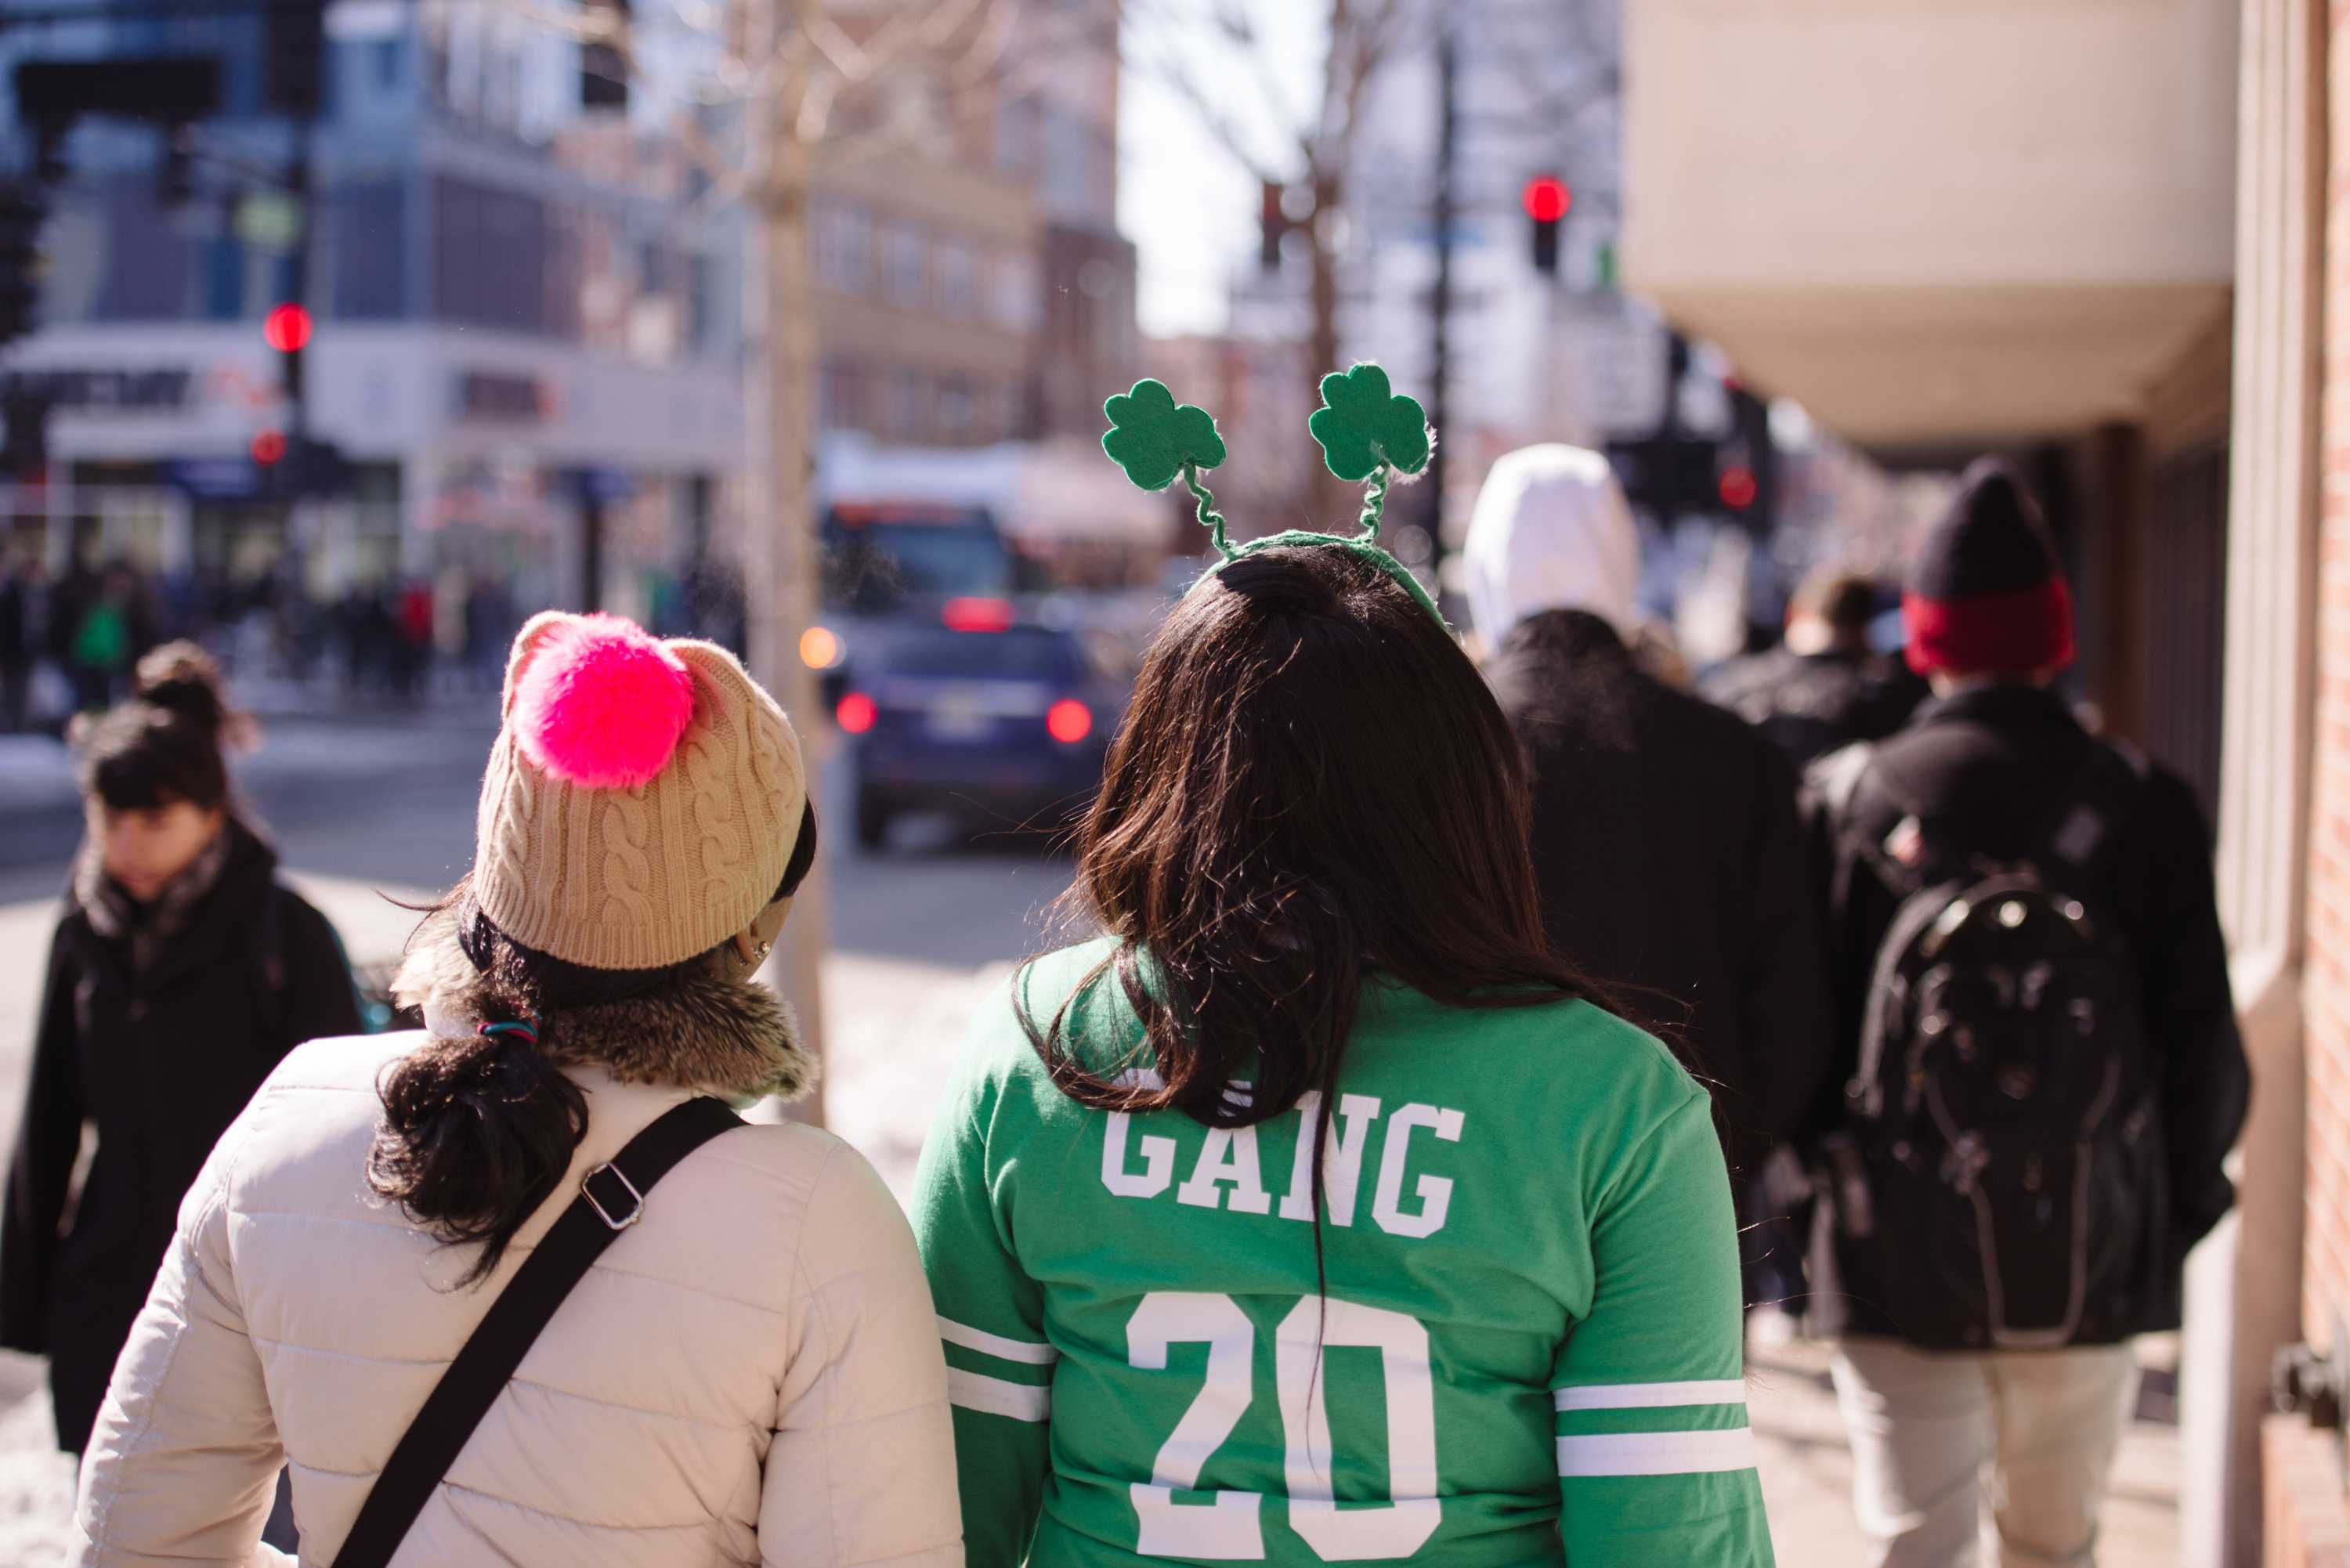 Unofficial participants walk down Green Street in search of fun and festivities on last March.